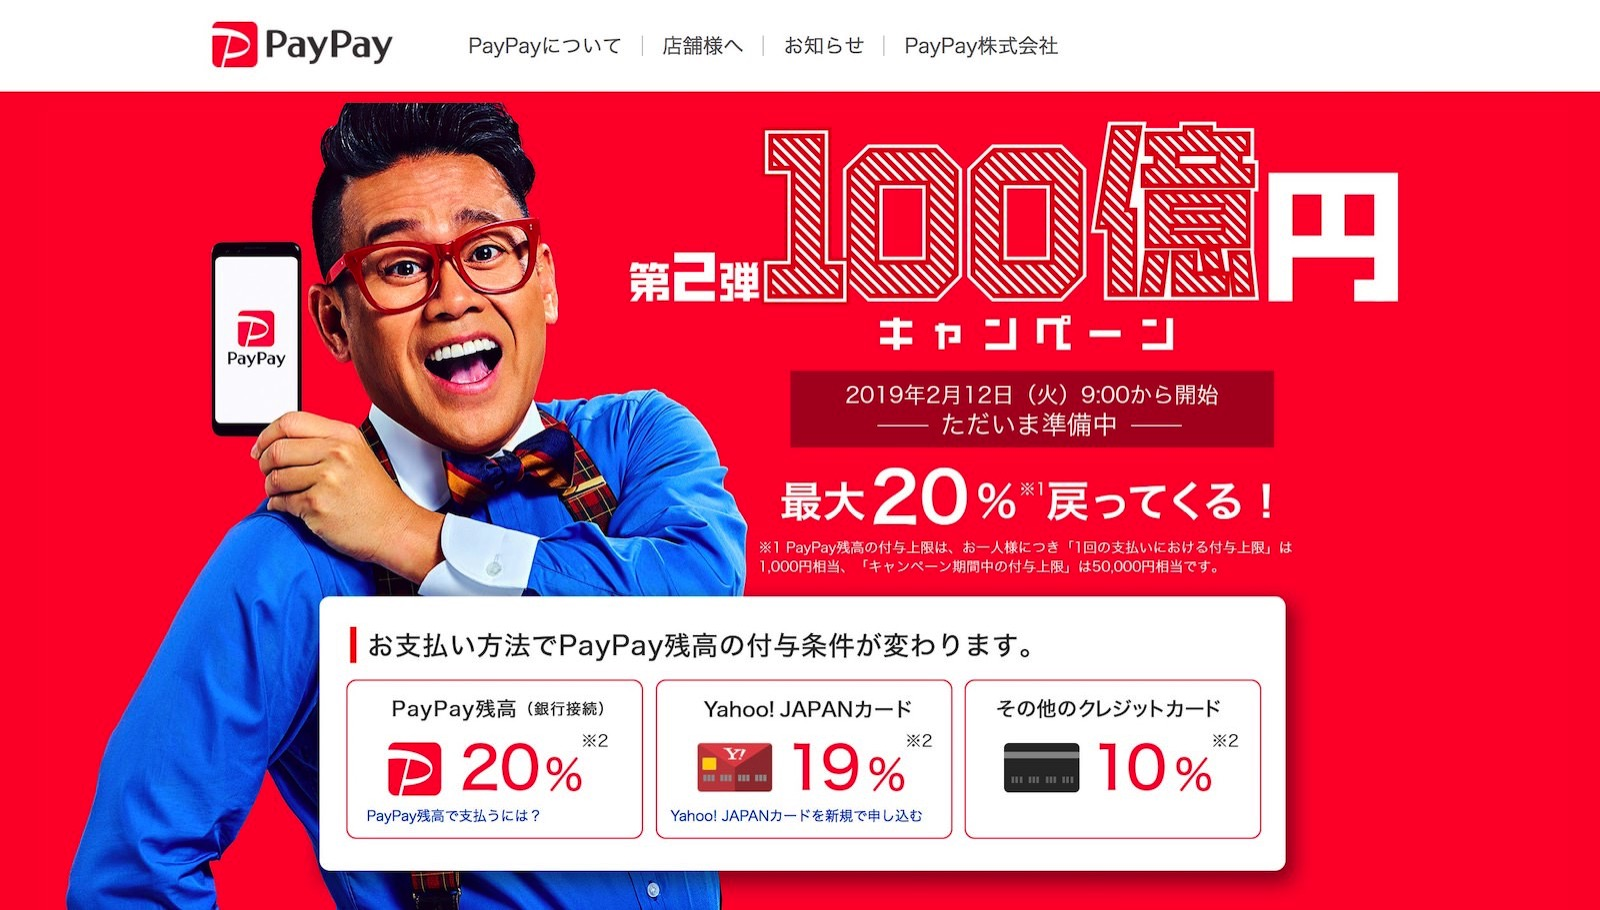 PayPay New 20Percent Campaign